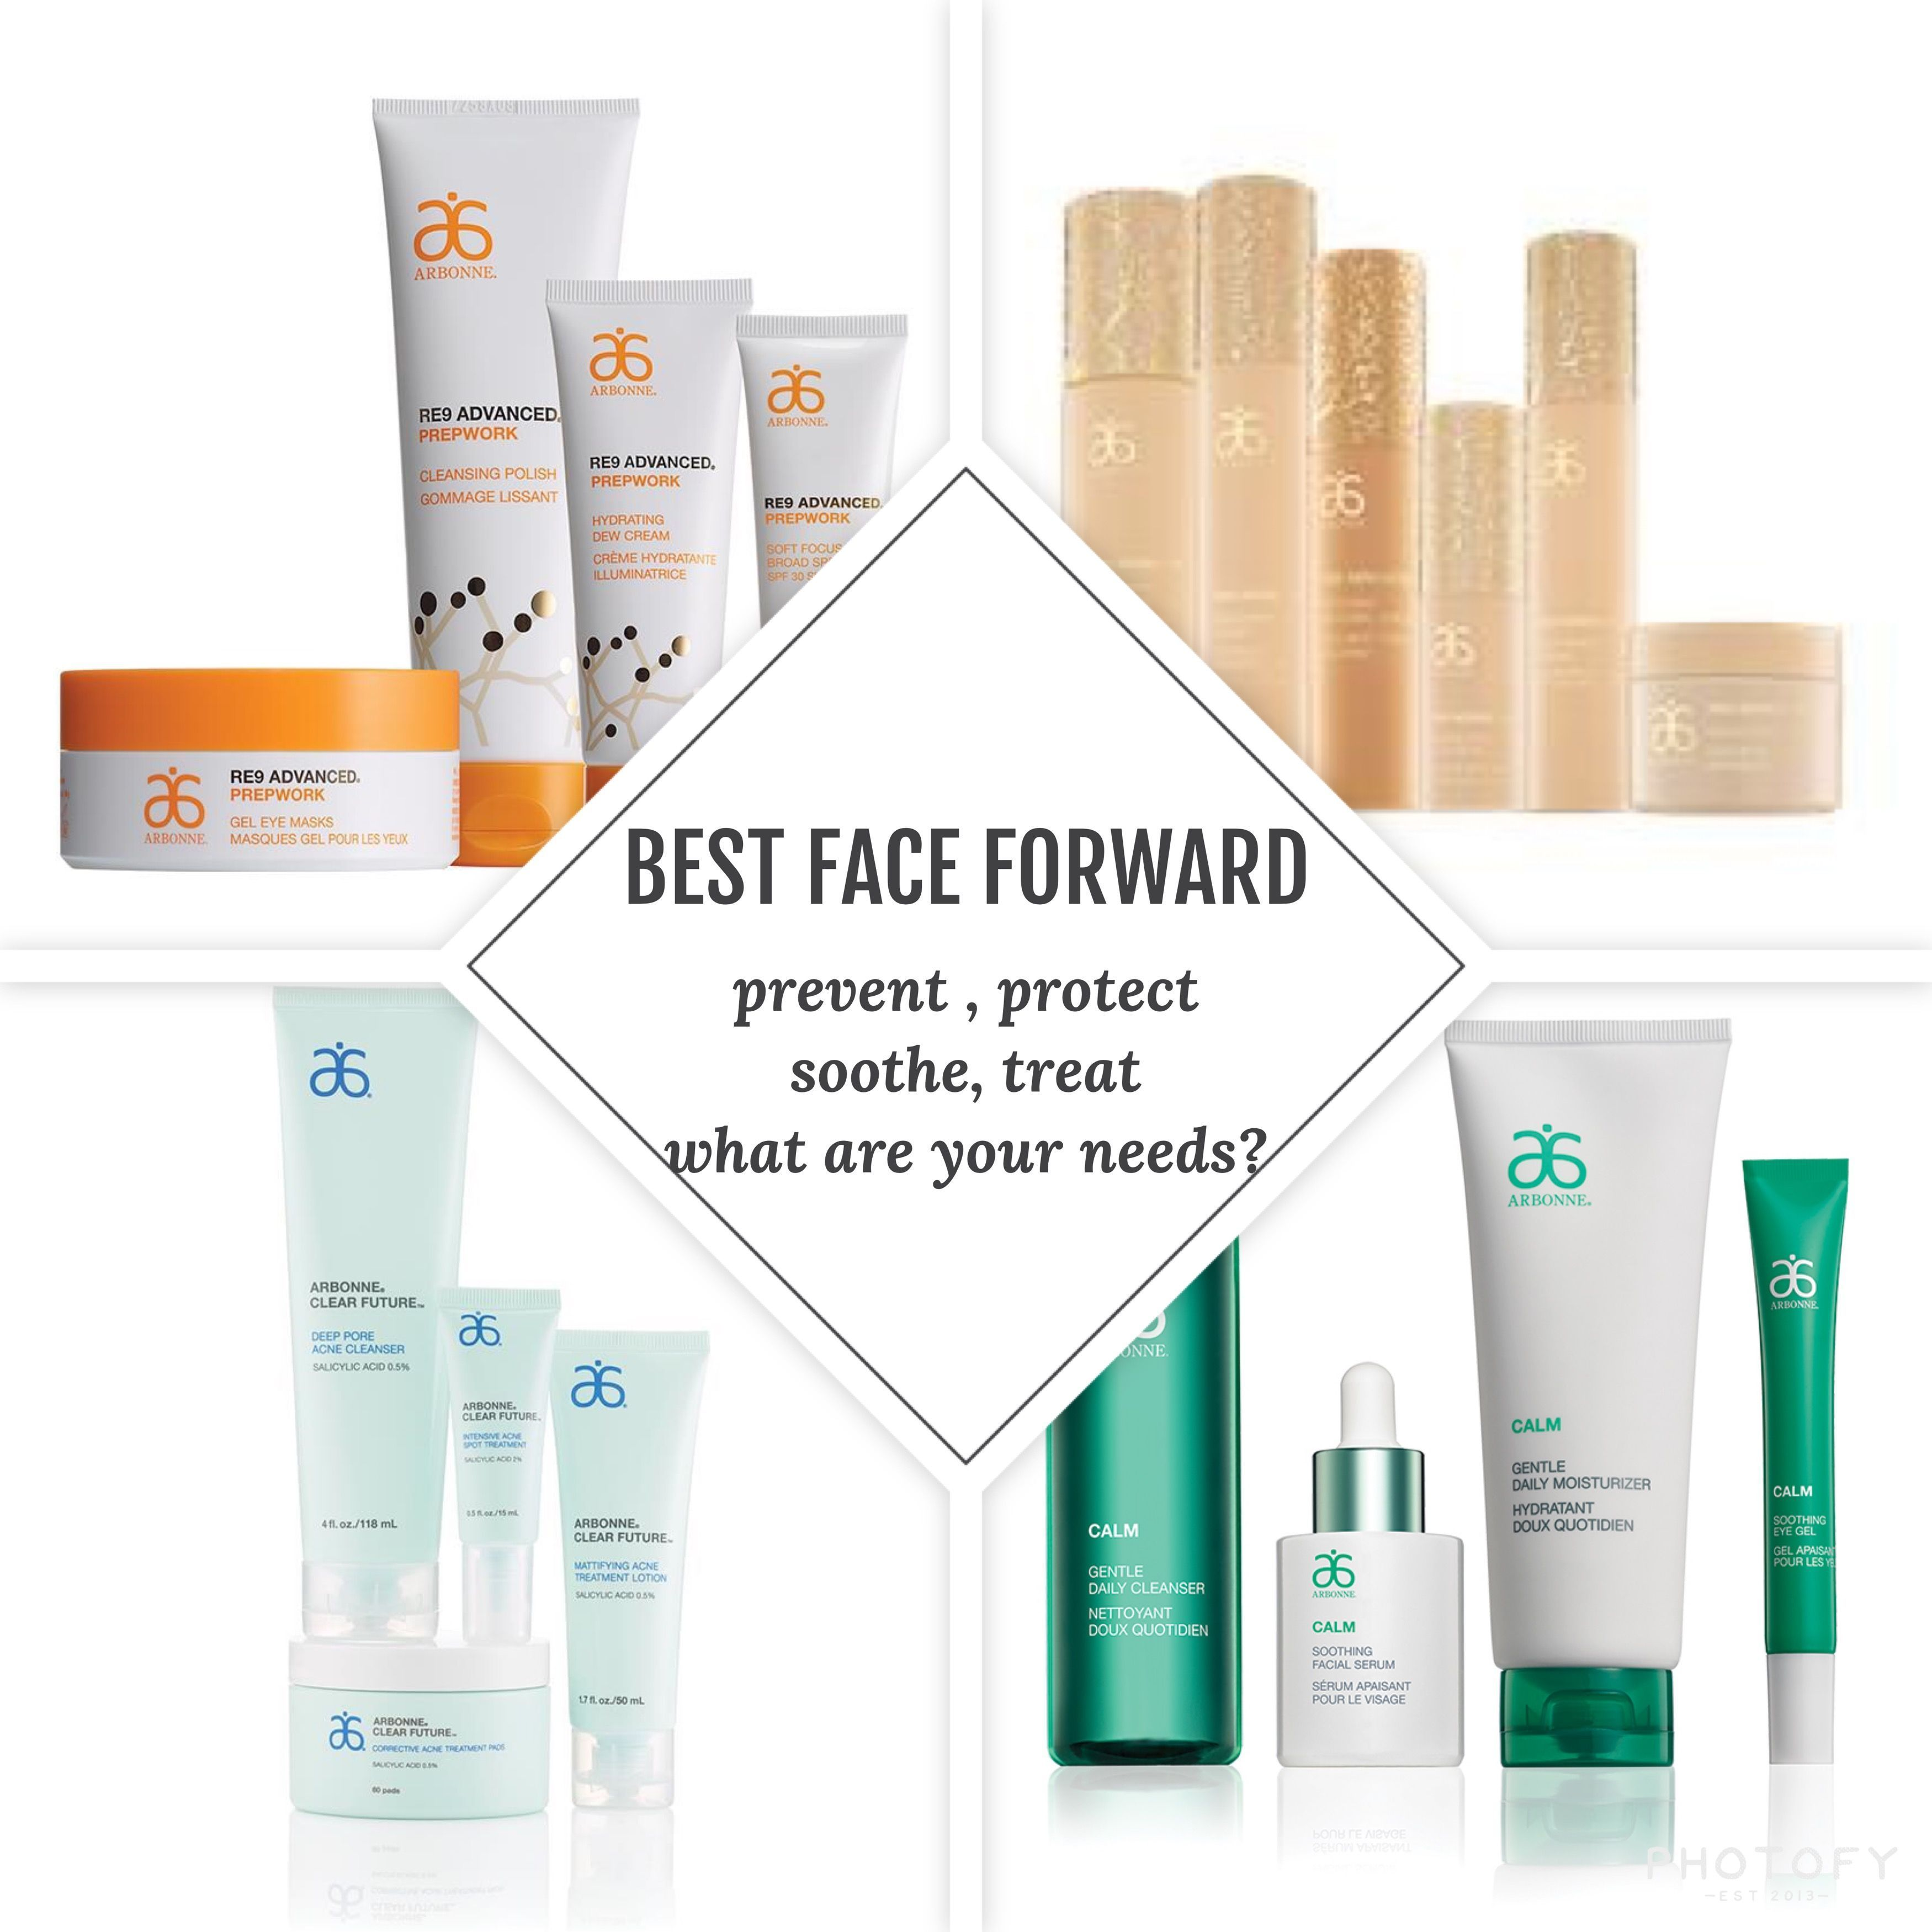 Put Your Best Face Forward With Targeted Lines For Your Needs Discover The Arbonne Difference Poresonface Skincareroutin Arbonne Skin Care Arbonne Skin Care